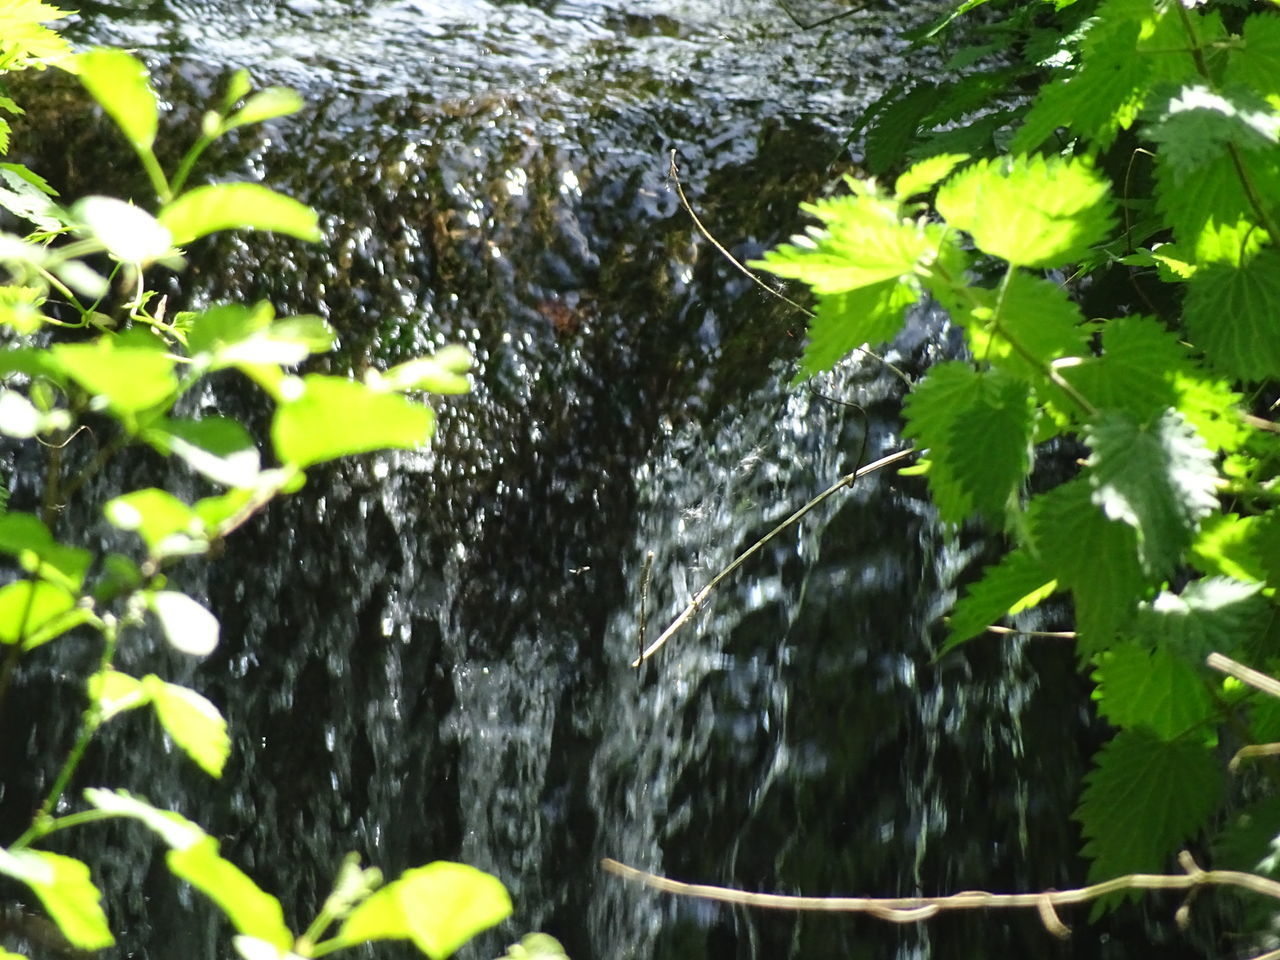 water, leaf, growth, motion, nature, tree, plant, day, wet, outdoors, drop, no people, green color, tree trunk, spraying, beauty in nature, close-up, freshness